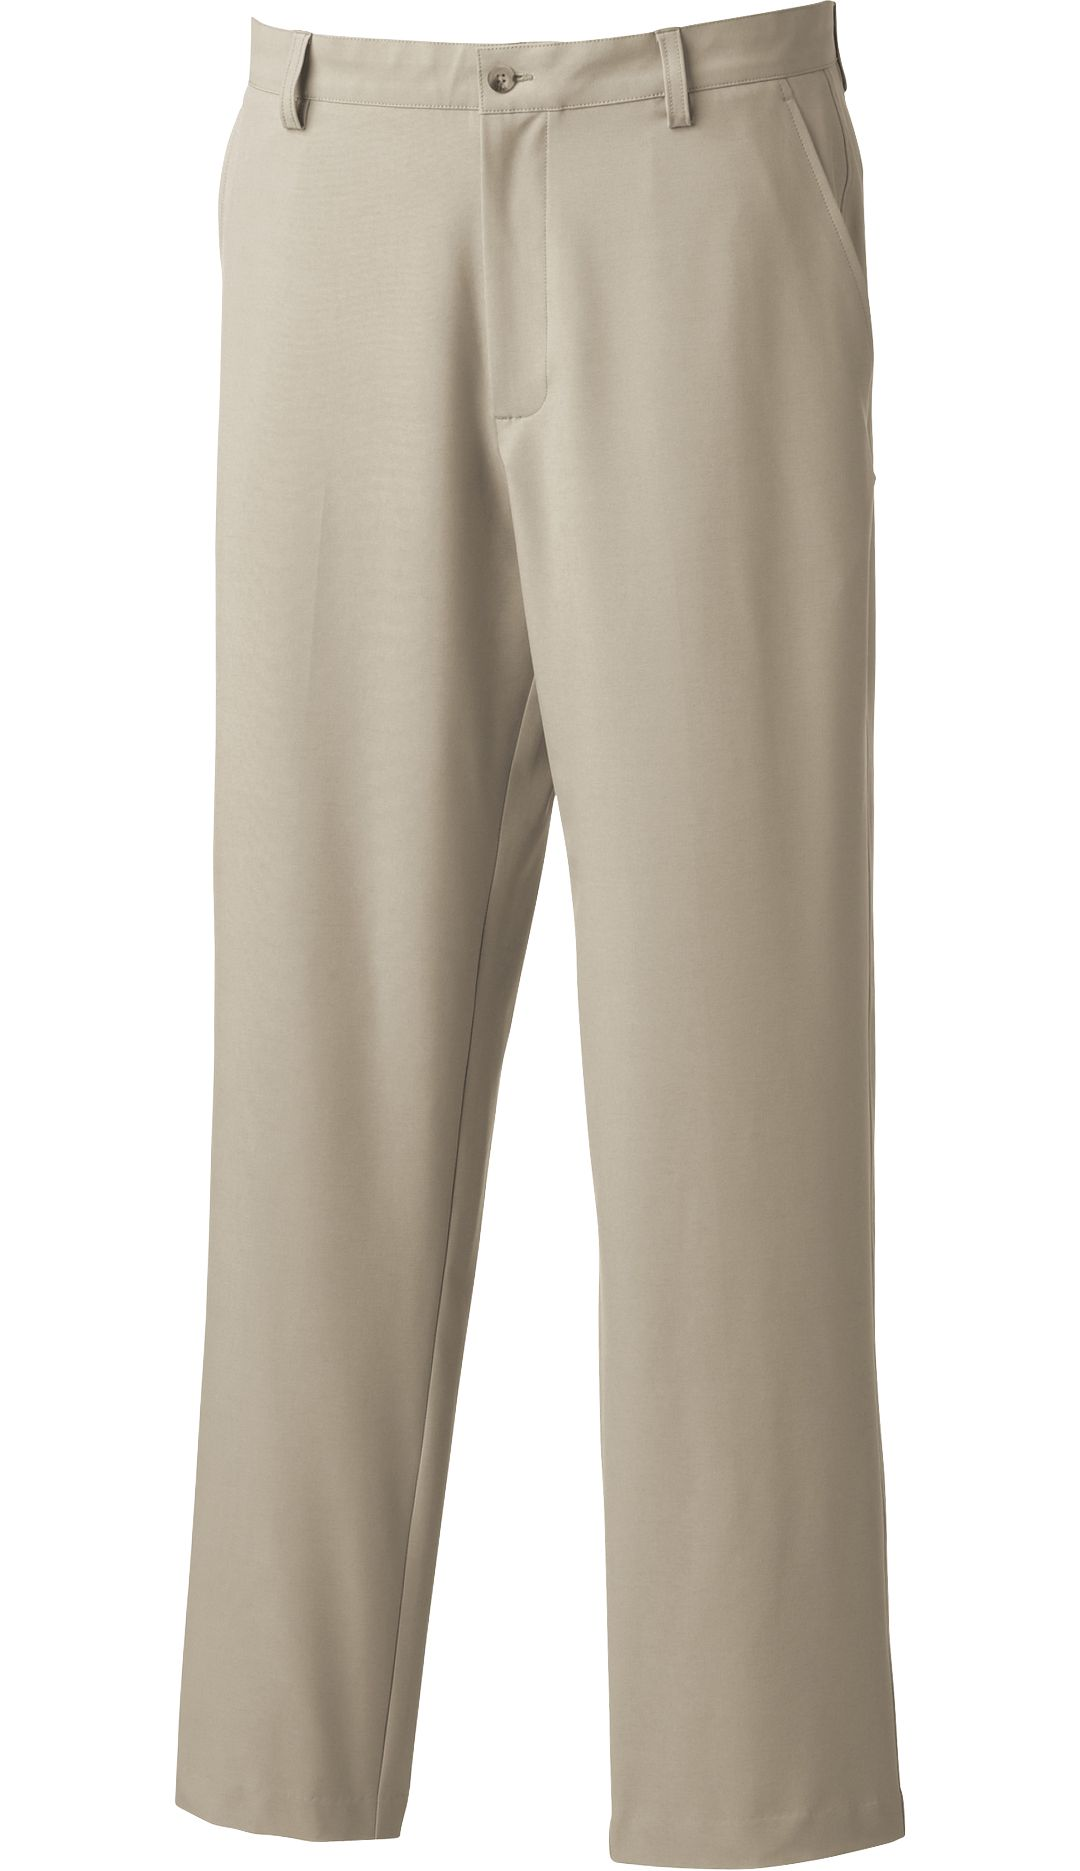 817cd85af26e09 FootJoy Men's Performance Golf Pants | DICK'S Sporting Goods